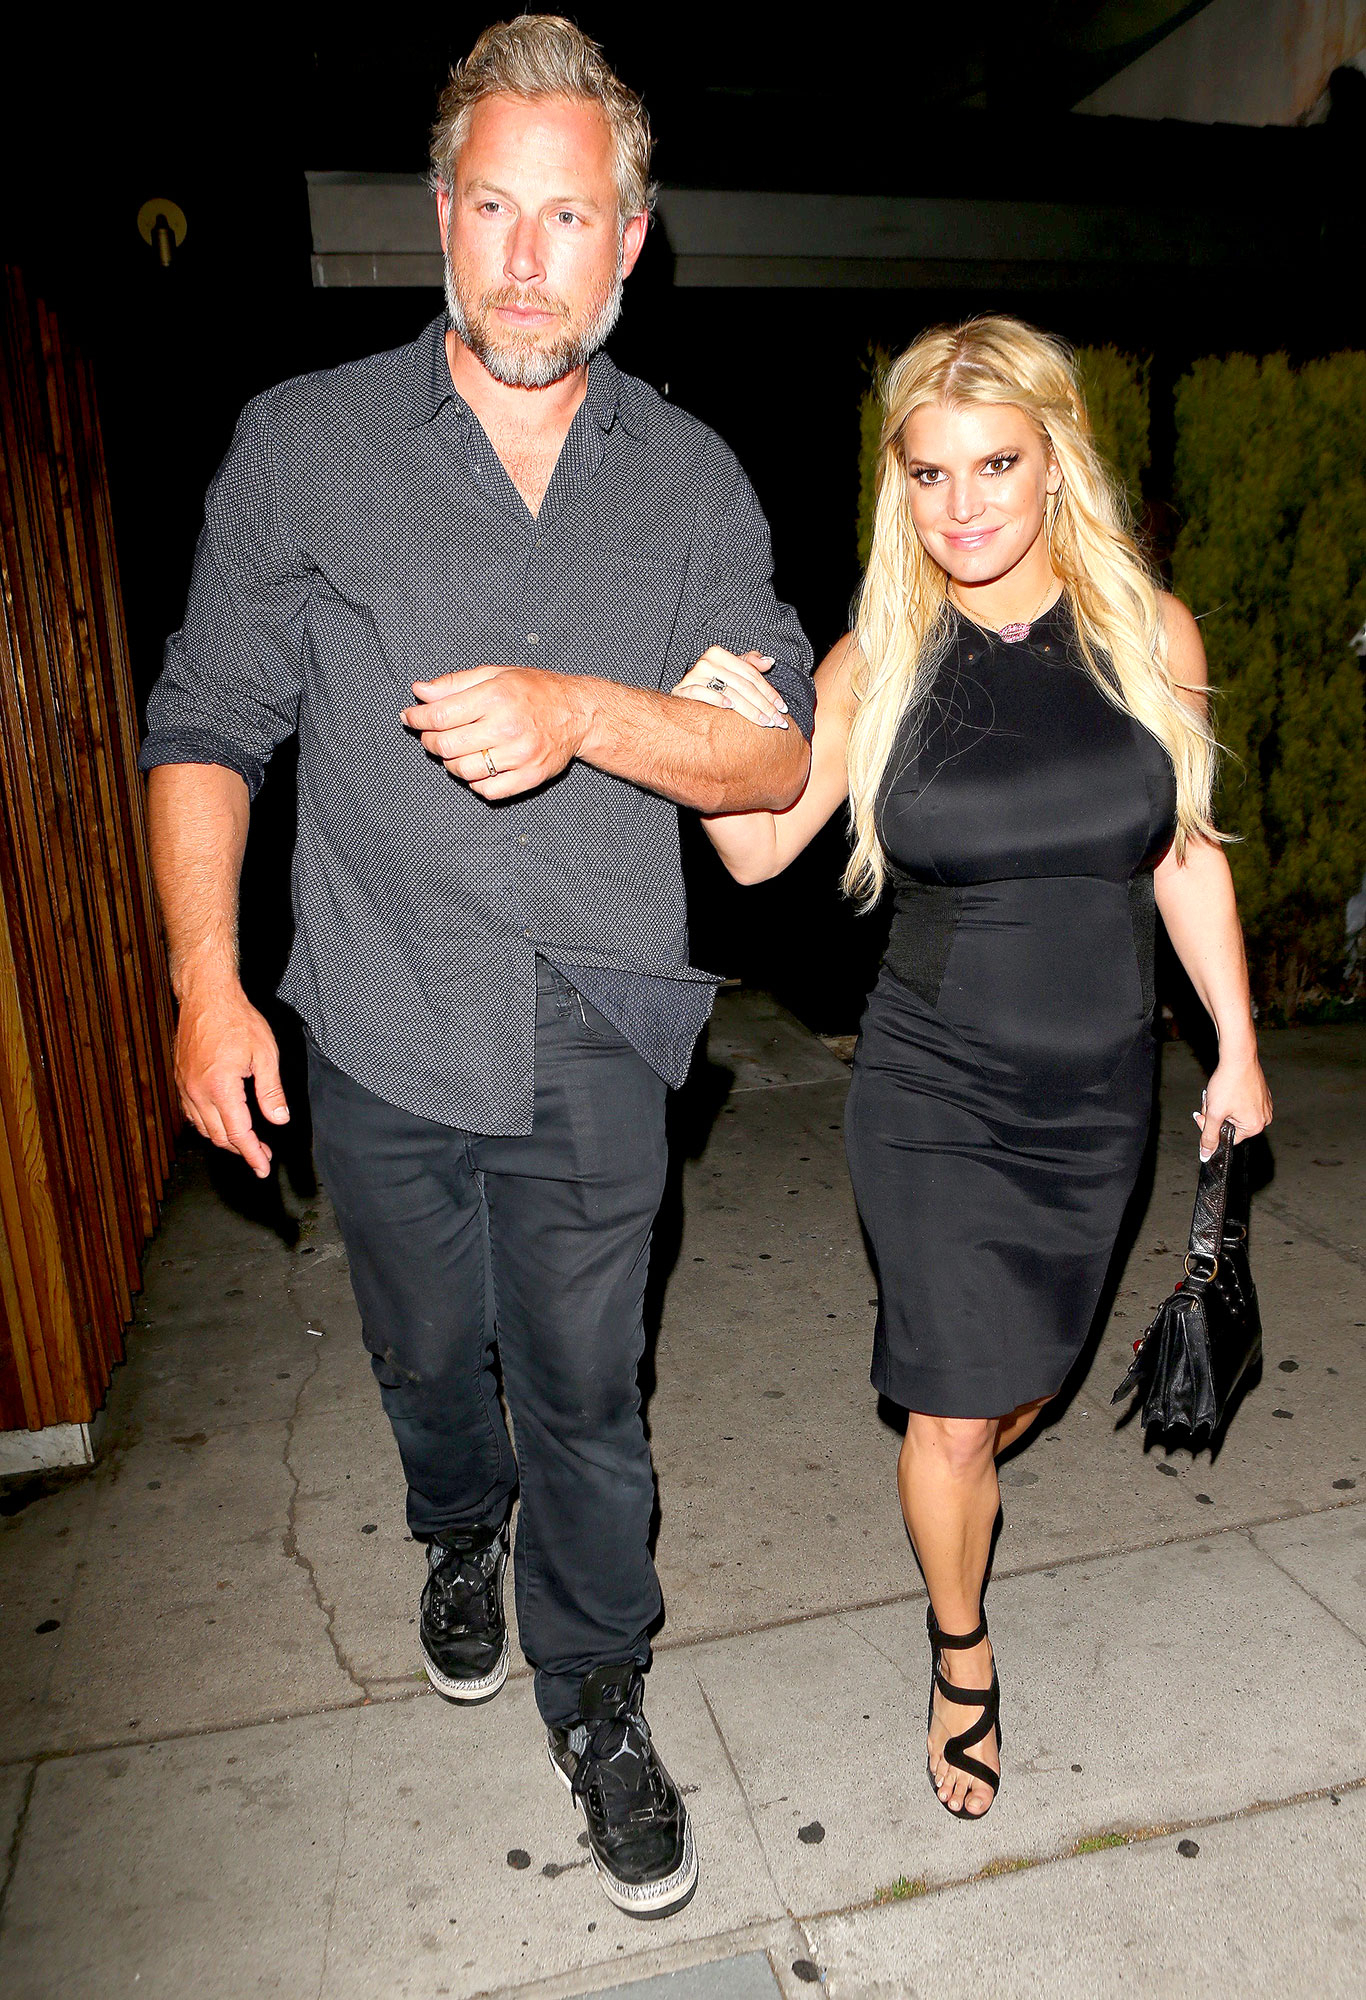 Jessica Simpson Works Curves in Tight Black Dress: Photo